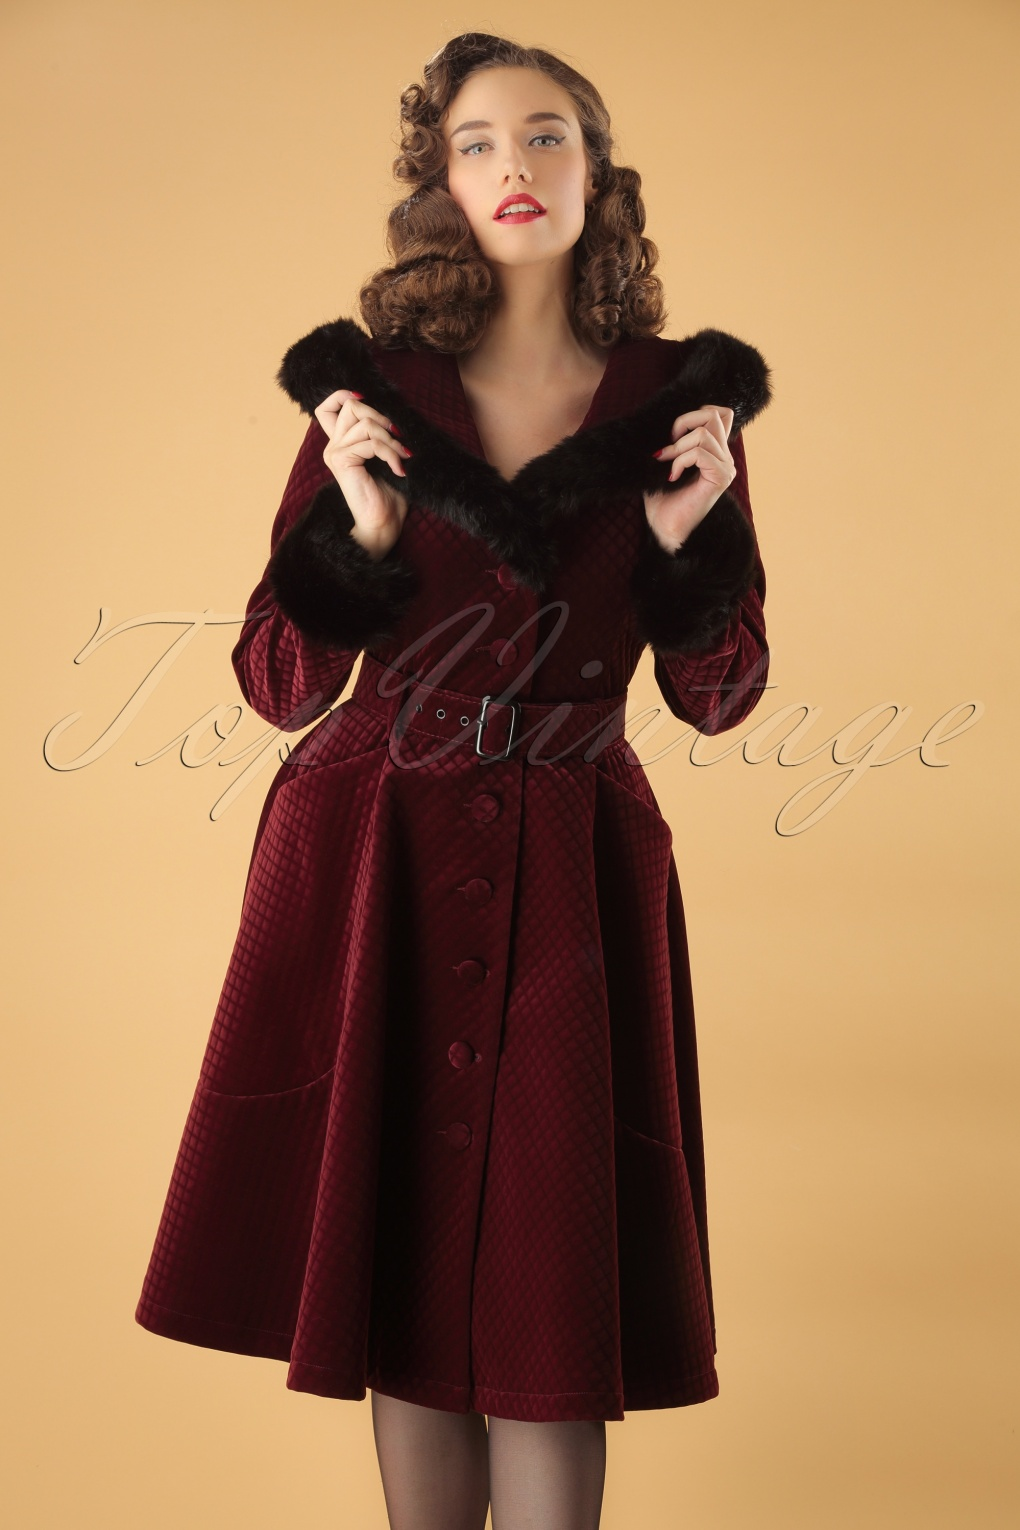 1950s Jackets, Coats, Bolero | Swing, Pin Up, Rockabilly 50s Callie Quilted Velvet Swing Coat in Wine £194.97 AT vintagedancer.com